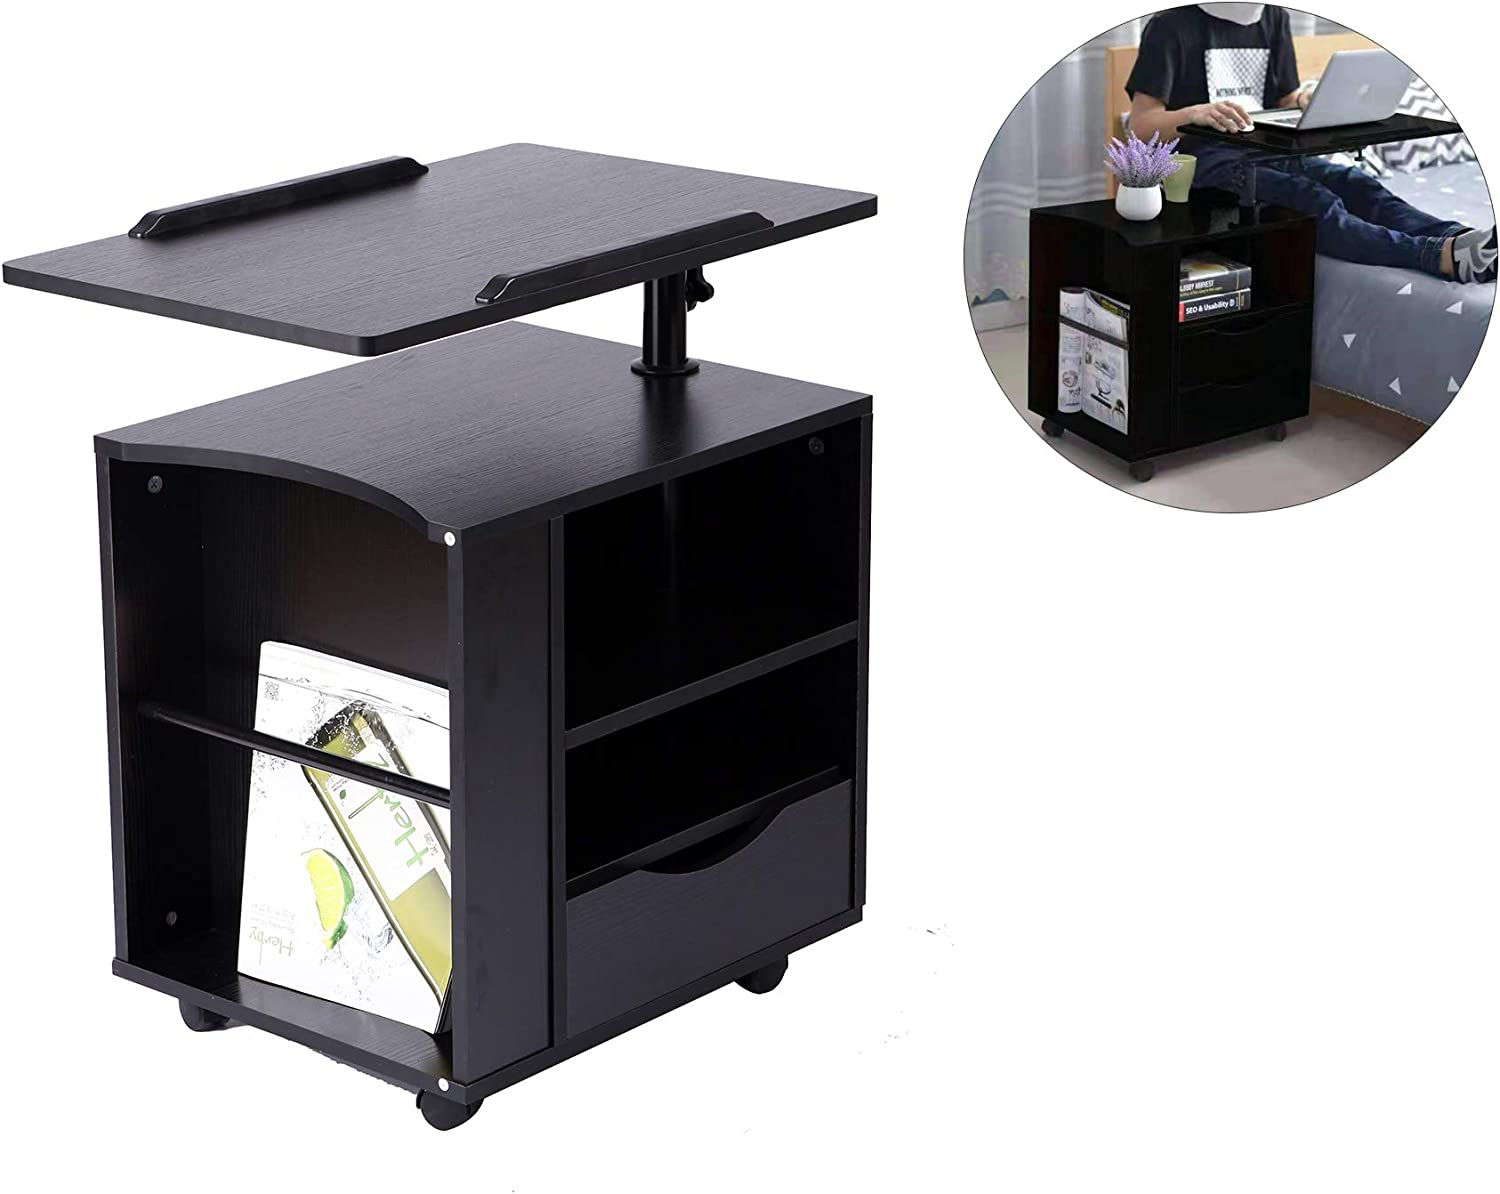 SIDUCAL Multi-Functional Wooden Bedside Table Height Adjustable & 360 Rotation Table top Rolling Laptop Desk Computer Table,Nightstand with Drawers, Black (Right Side)